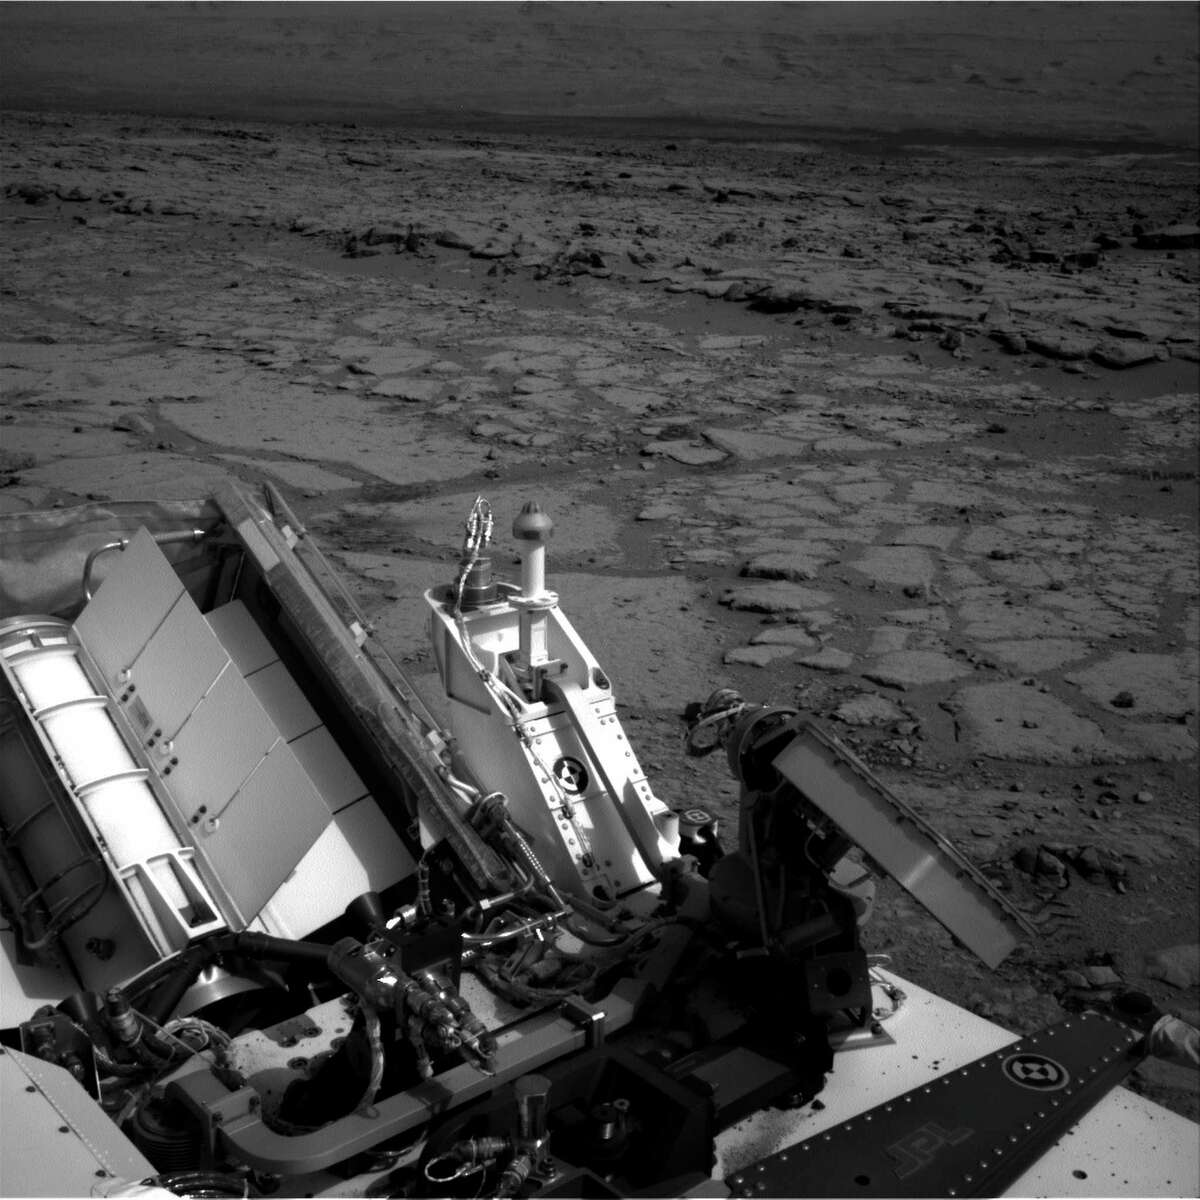 FILE - This Dec. 12, 2012 file image provided by NASA shows the Mars rover Curiosity at a pit stop, a shallow depression called